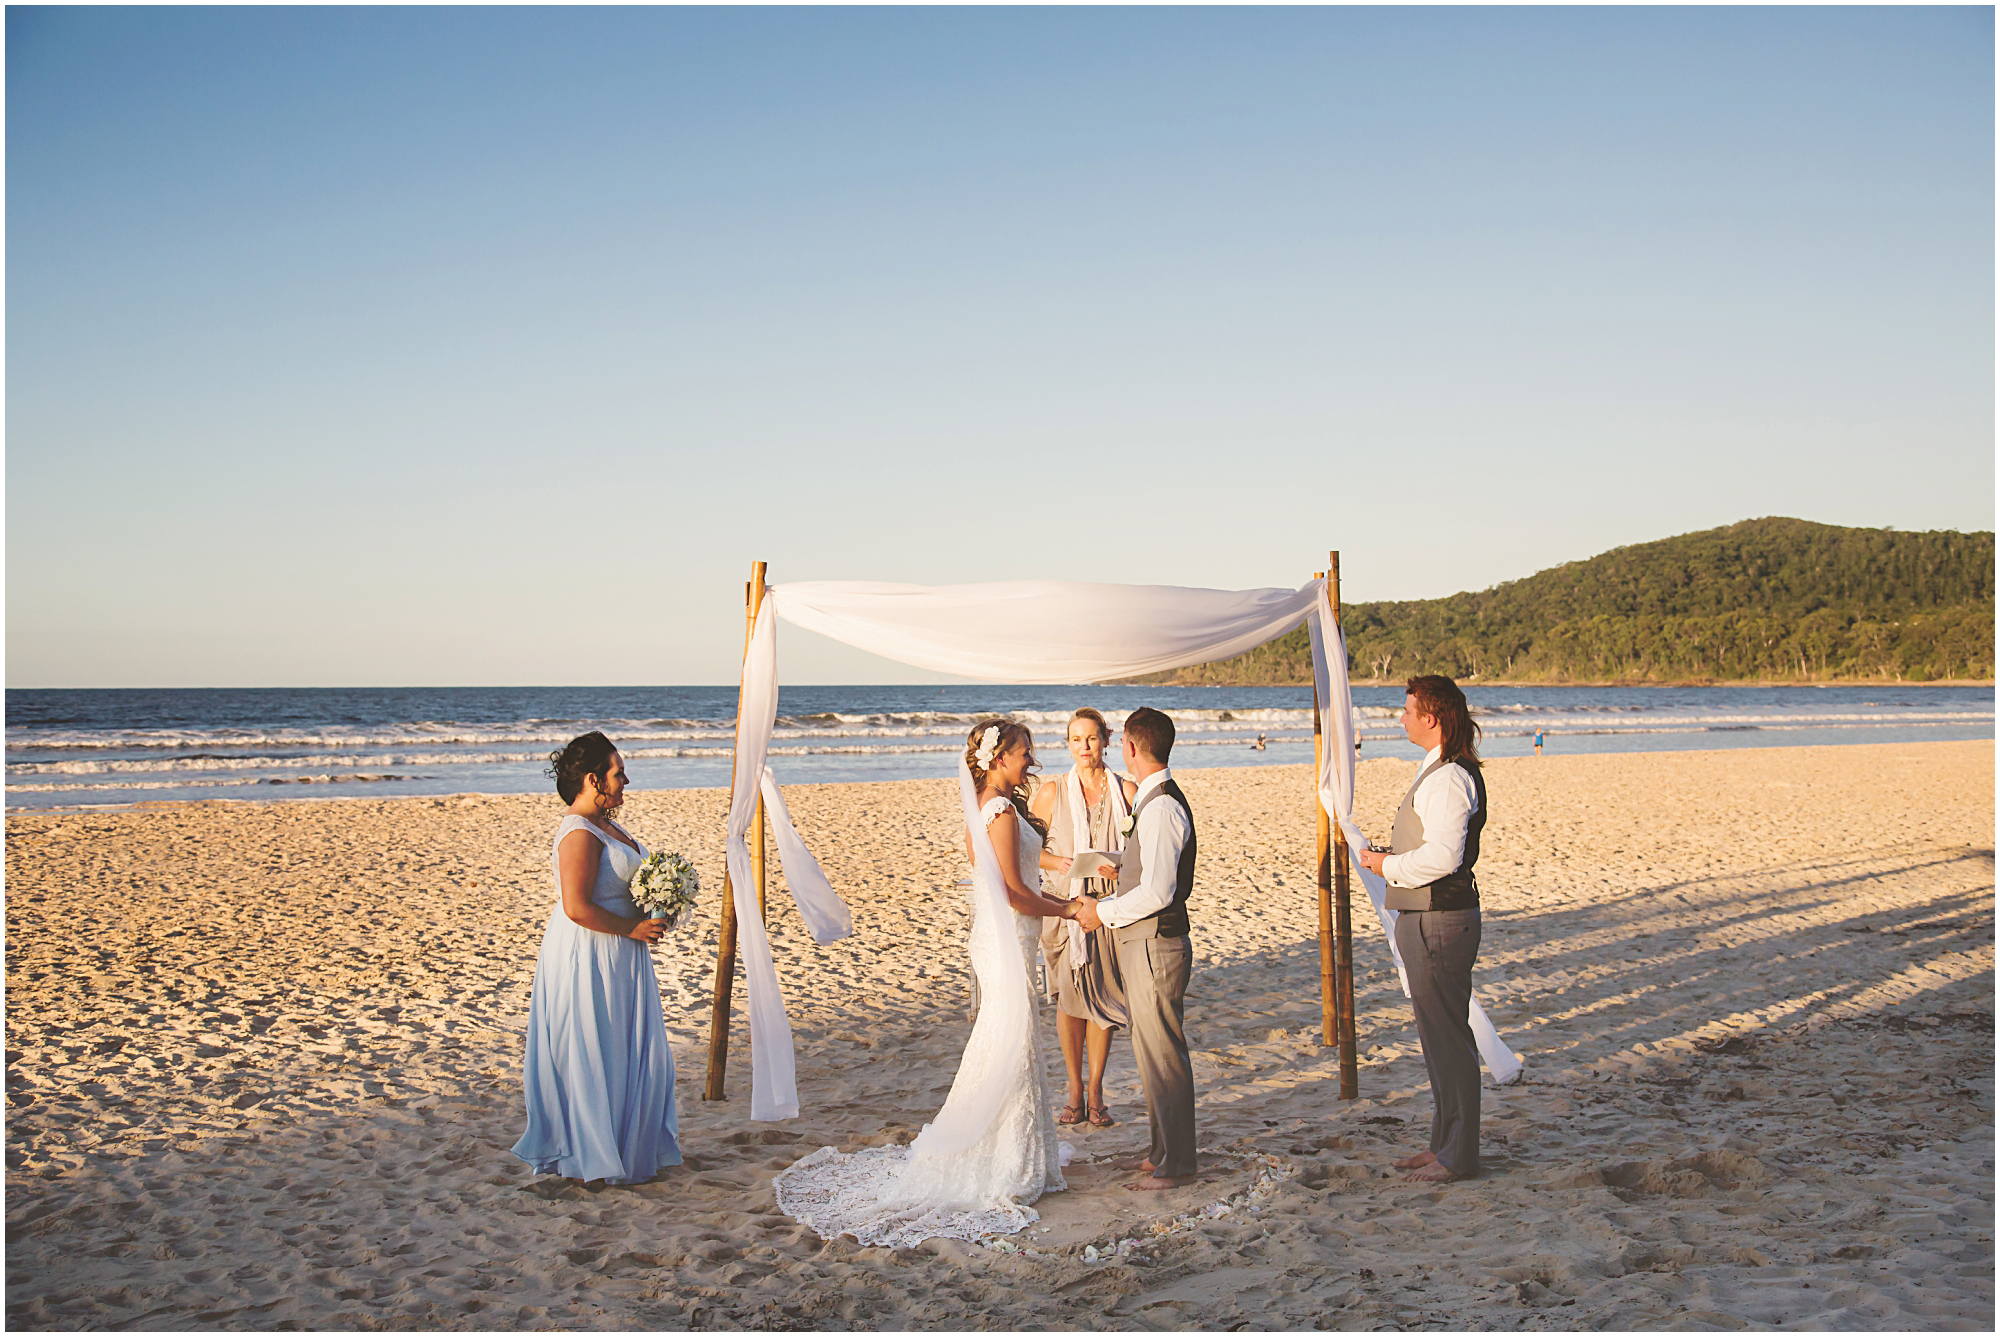 Kaela and Isaac's elopement. ceremony: Beach access 12, Noosa Heads. photography: images by Lou O'Brien. Noosa Elopements.